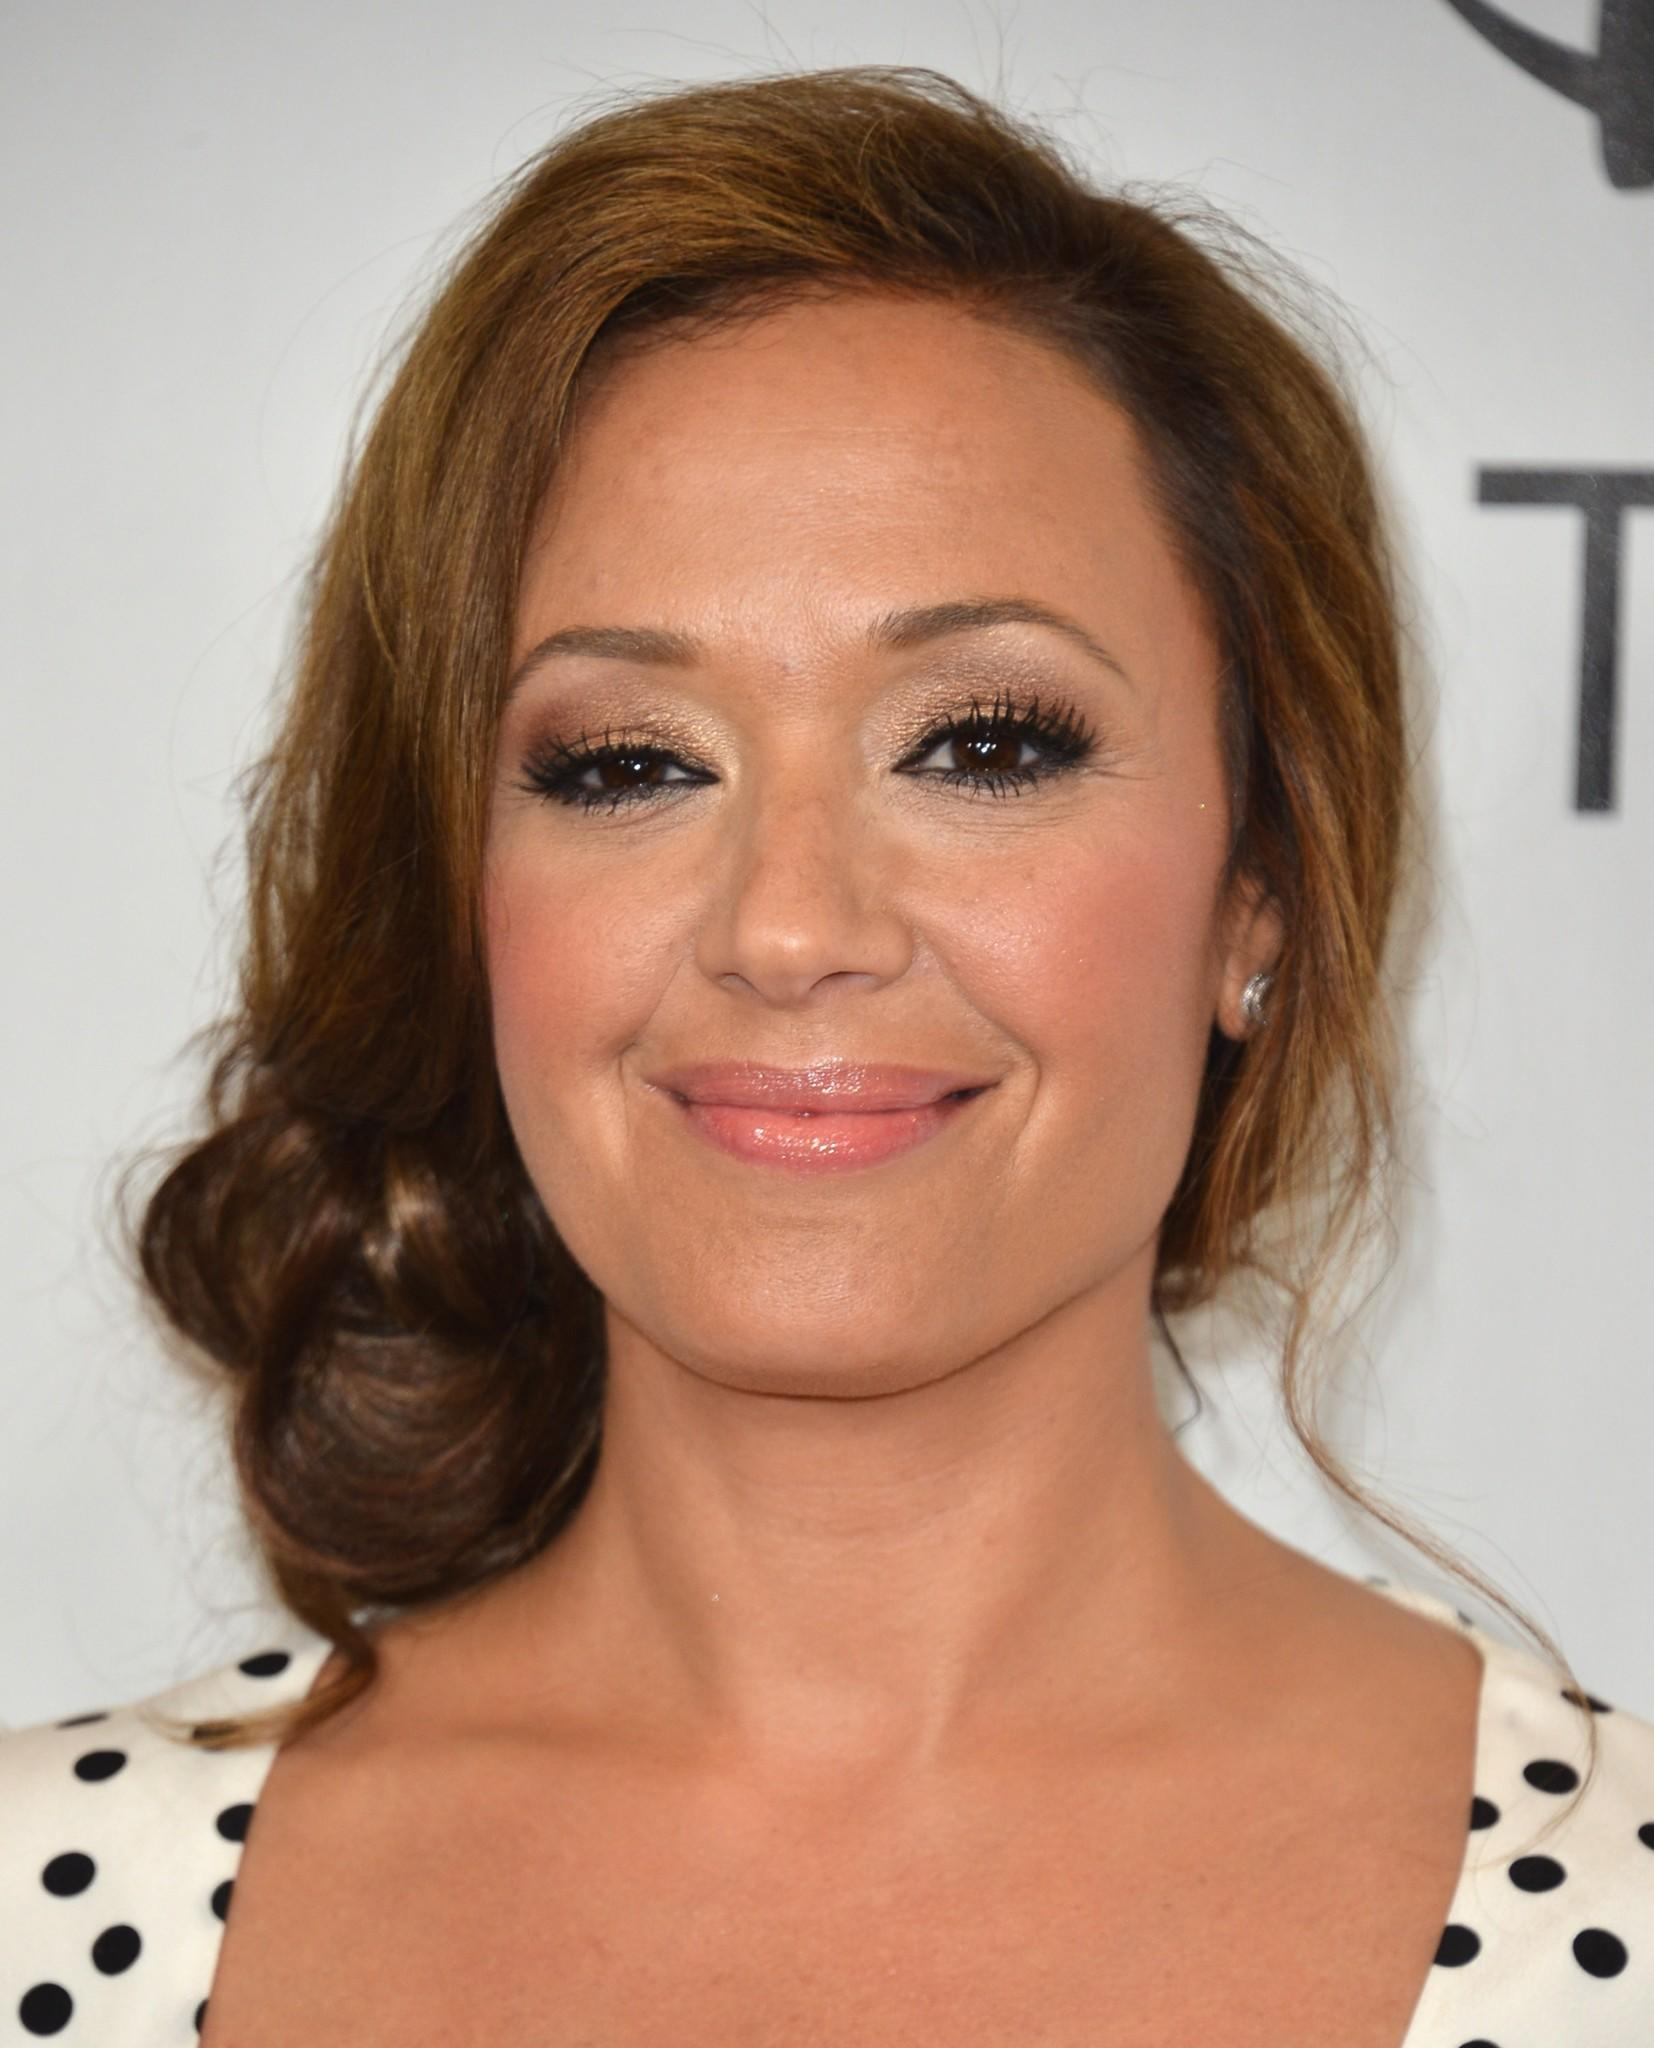 Leah Remini is to star in her own TLC reality show this summer.